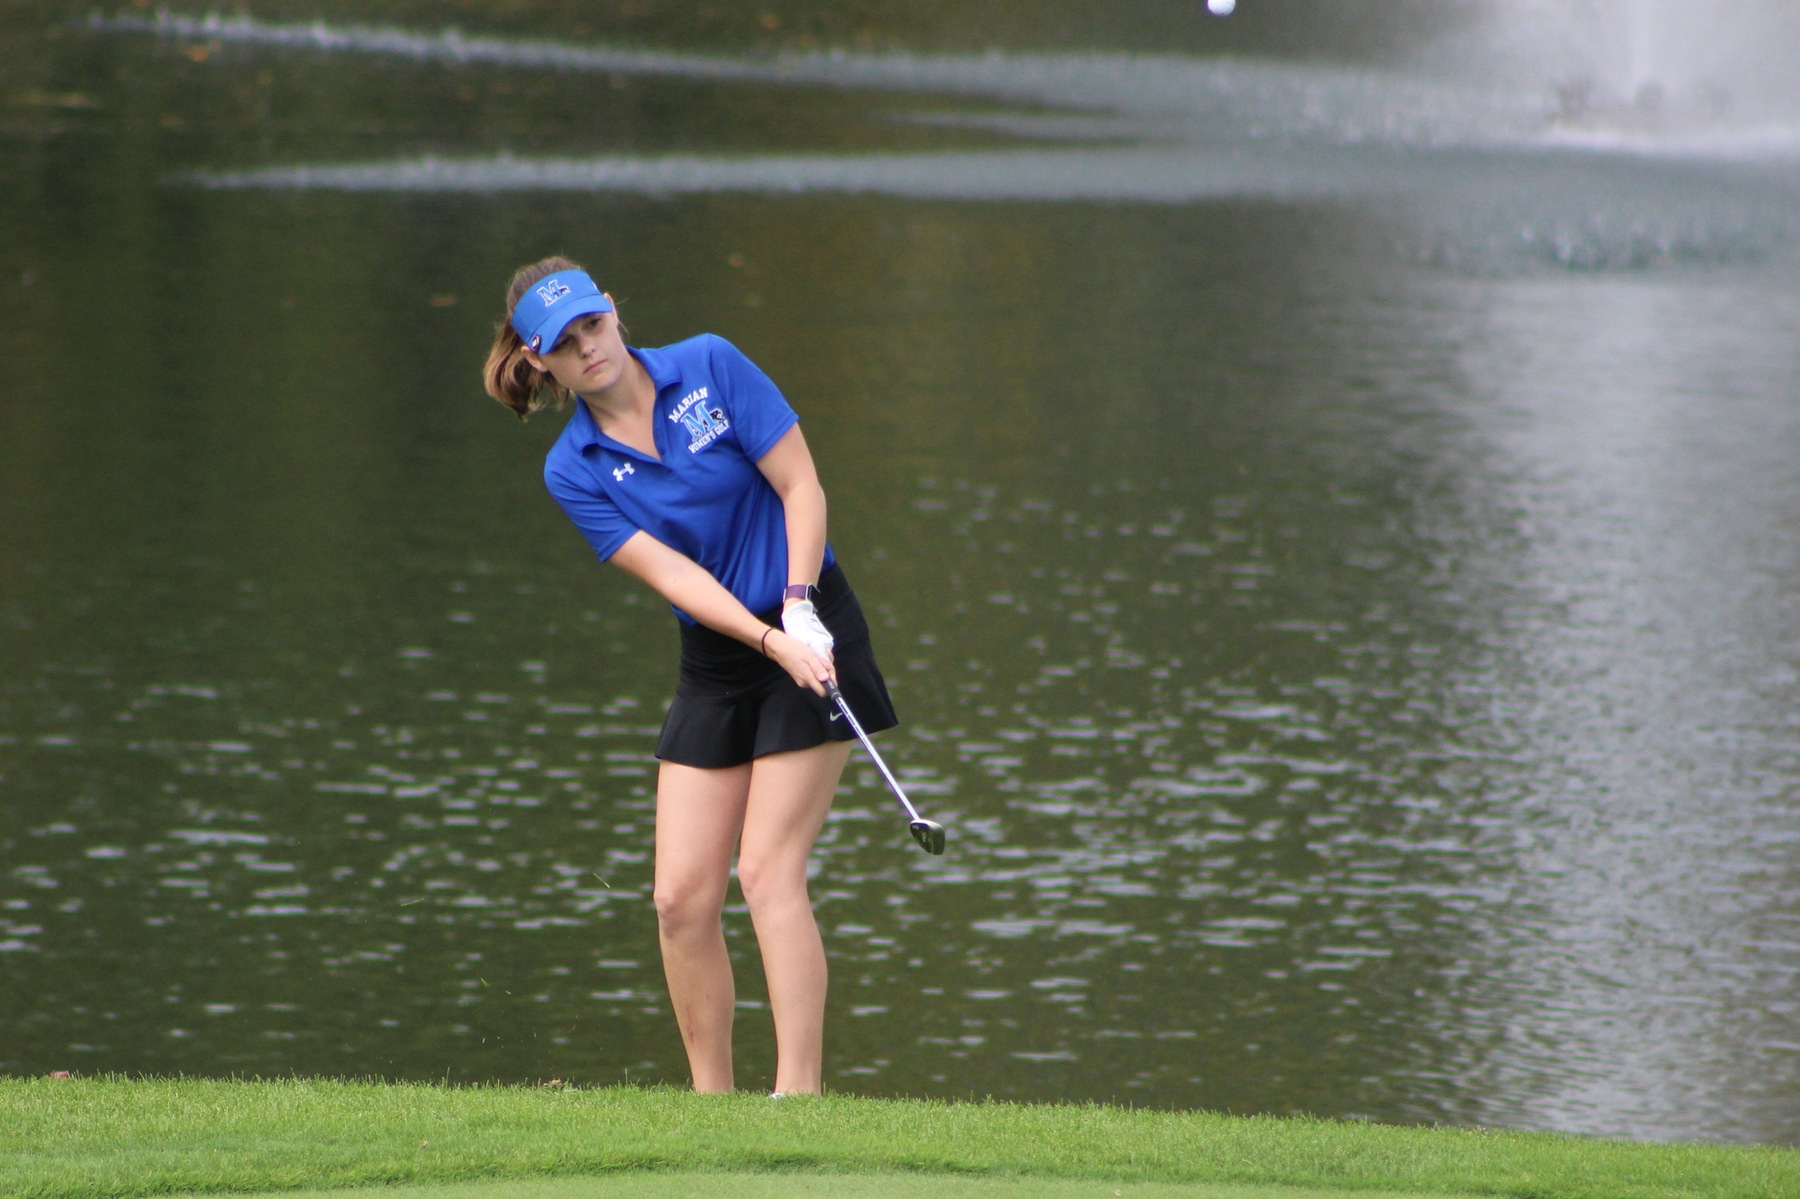 Tayler Wise chips the ball onto the green.